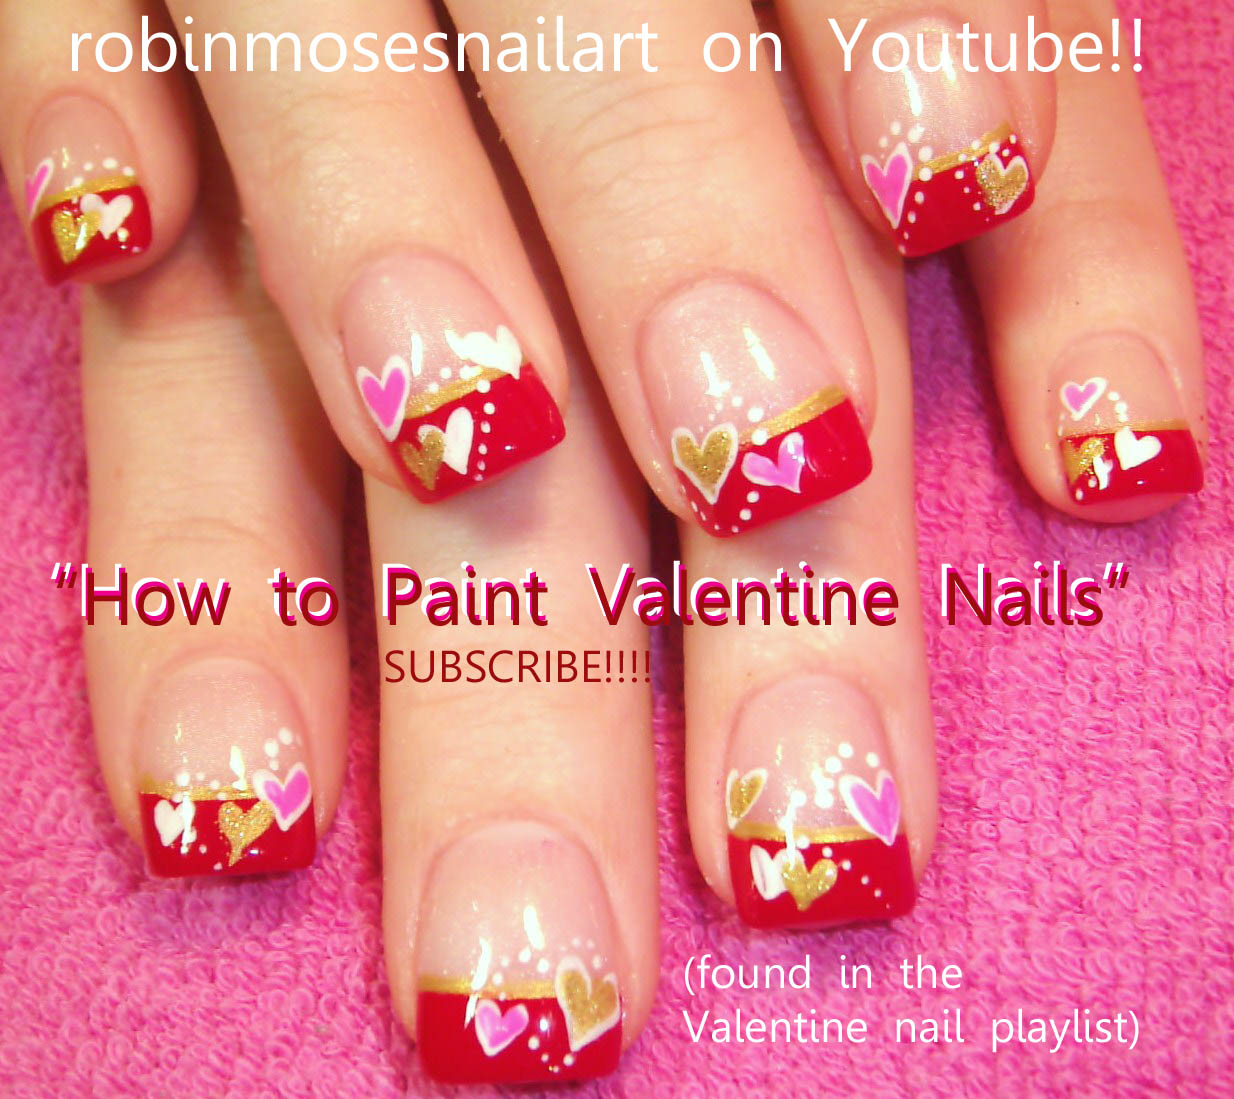 Nail art design how to paint hearts easy heart nail heart nails how to paint hearts easy heart nail heart nails raggedy ann nail raggedy ann and andy nail ragdoll nail red heart nail doll nails doll faces prinsesfo Images